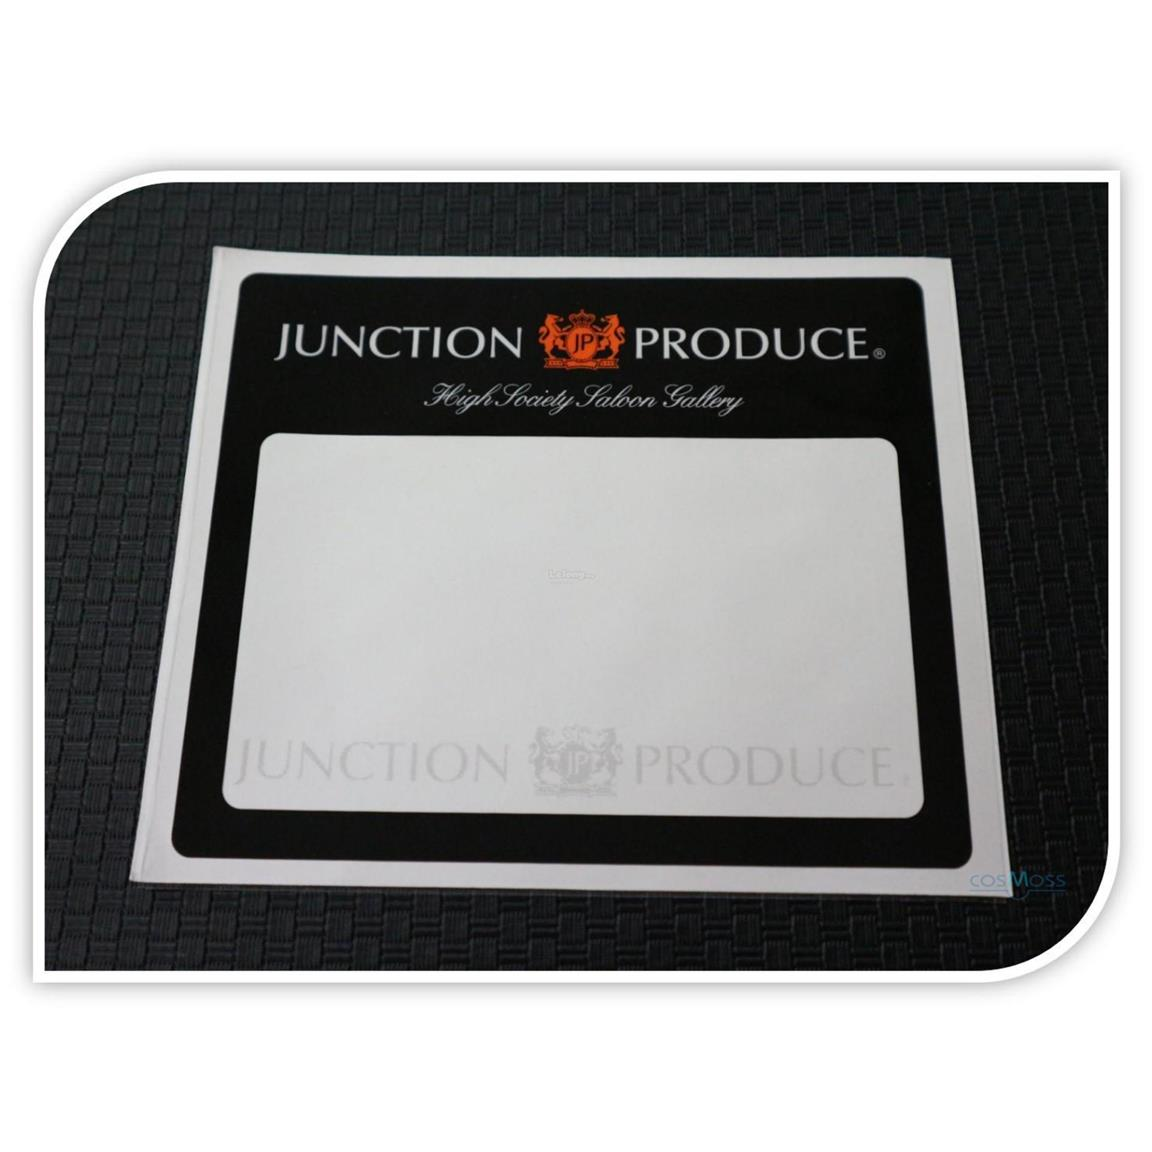 Car Road Tax Sticker Junction Produce